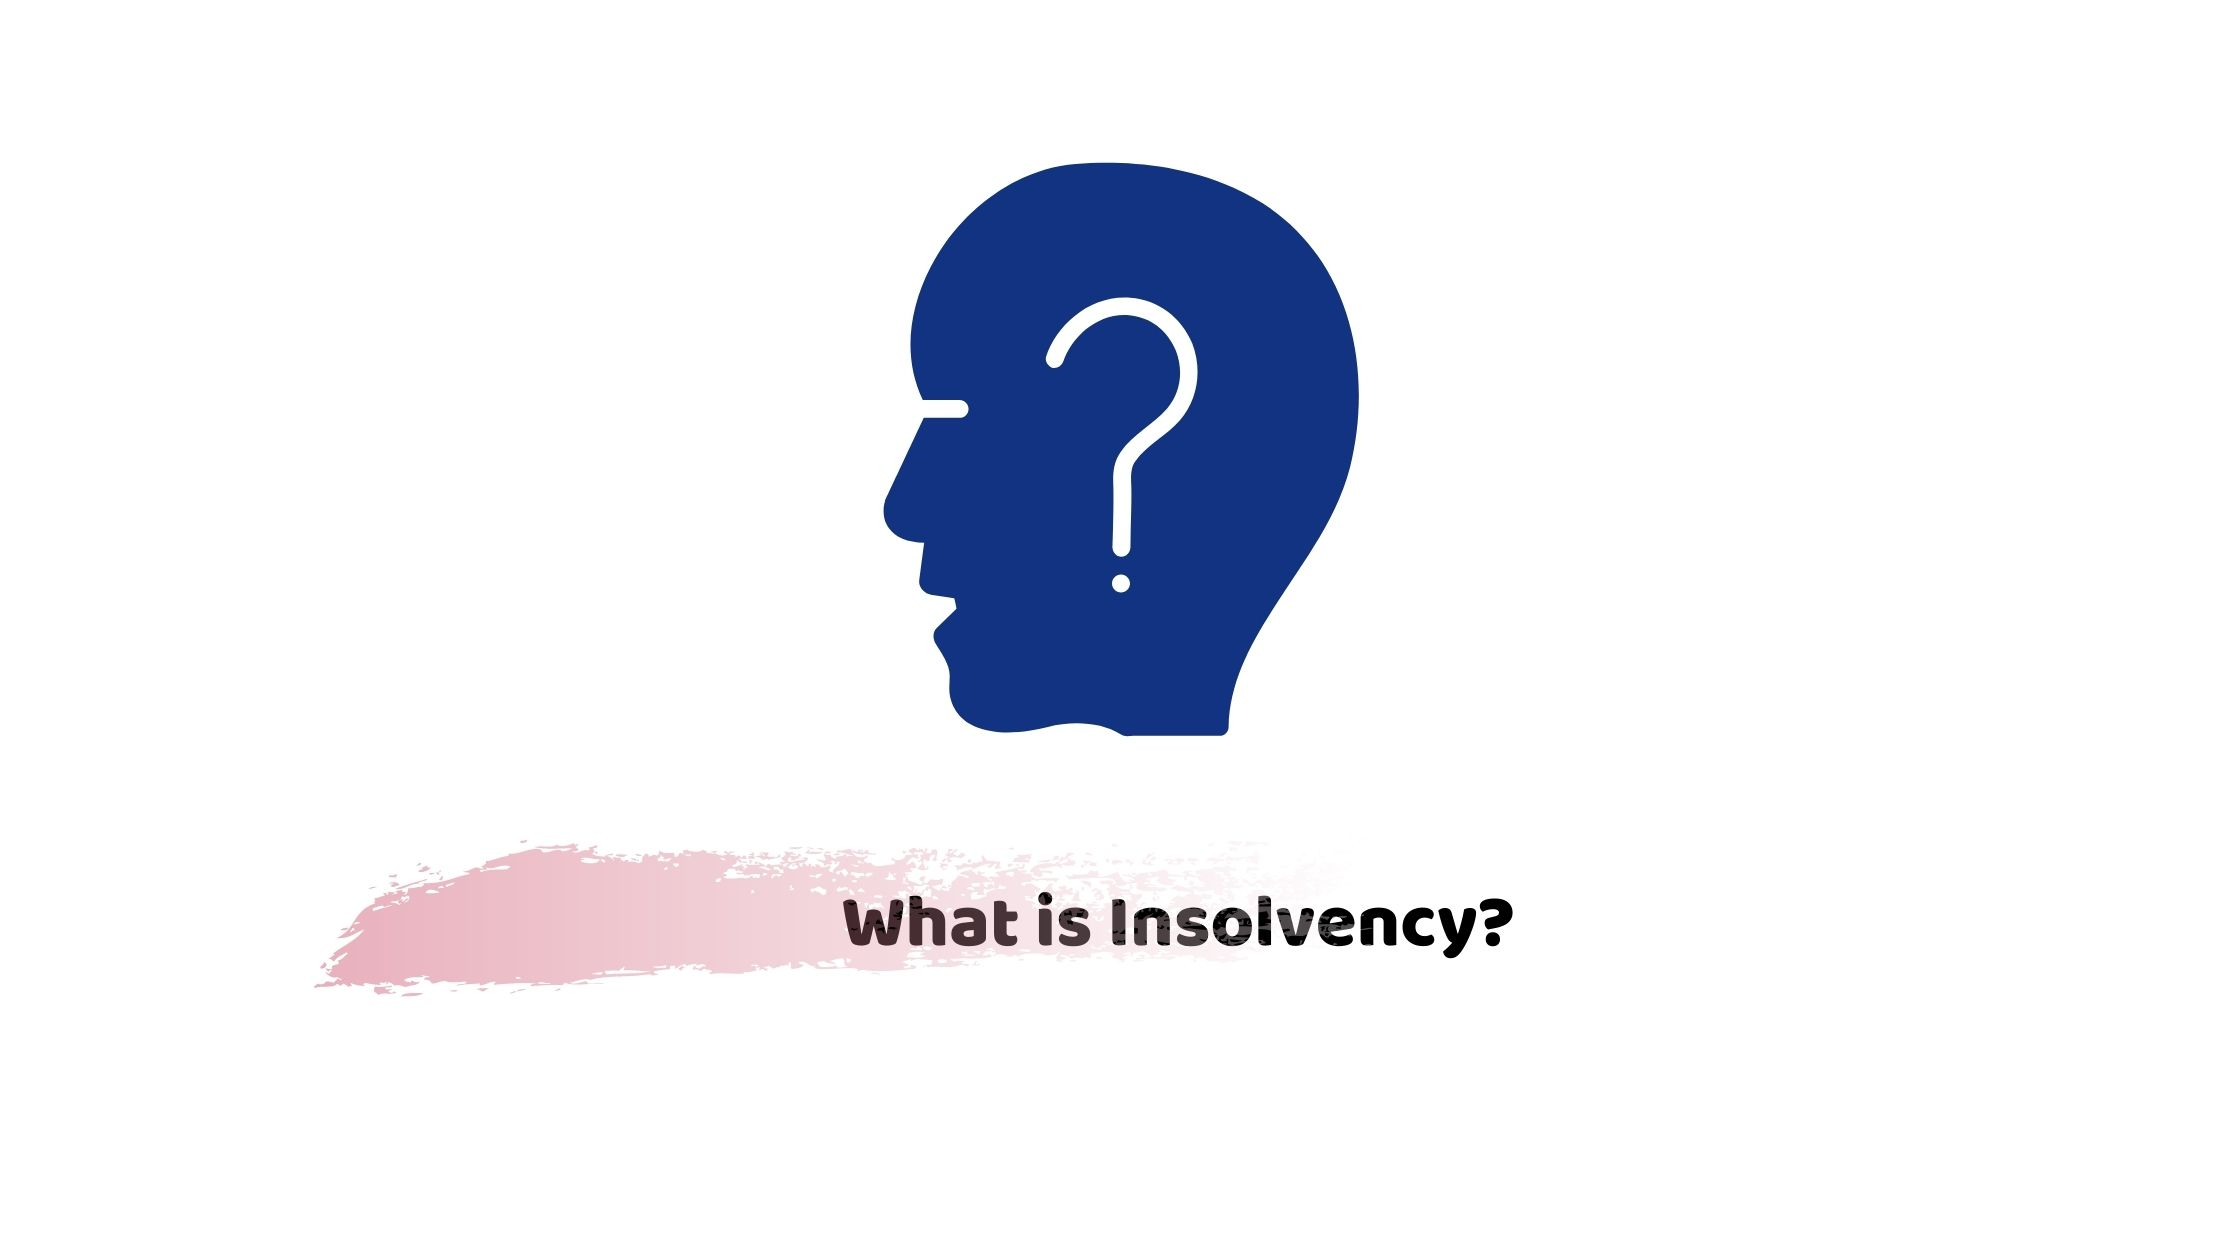 what is insolvency